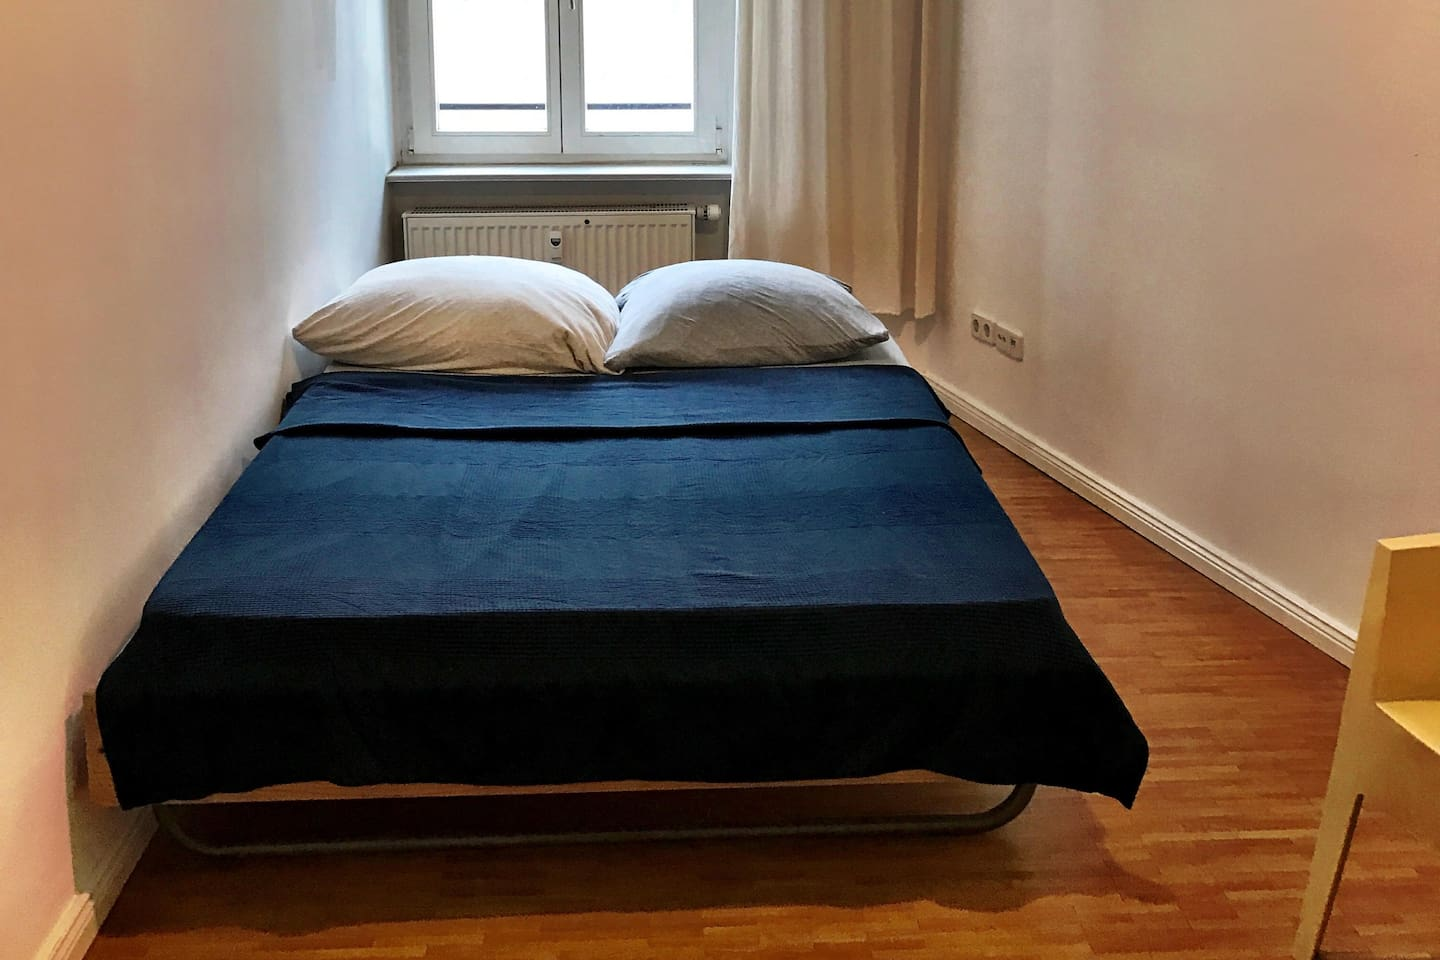 One  seperate Room in a beautyfull Appartment  (5 Floor Stairs walking !!!) At  Zionskirchplatz close to Rosenthalerplatz and Kastanienallee. A lot of nice Coffee like the famos Weinerei, or Internet Coworking Coffee like Oberholz in 300 m away